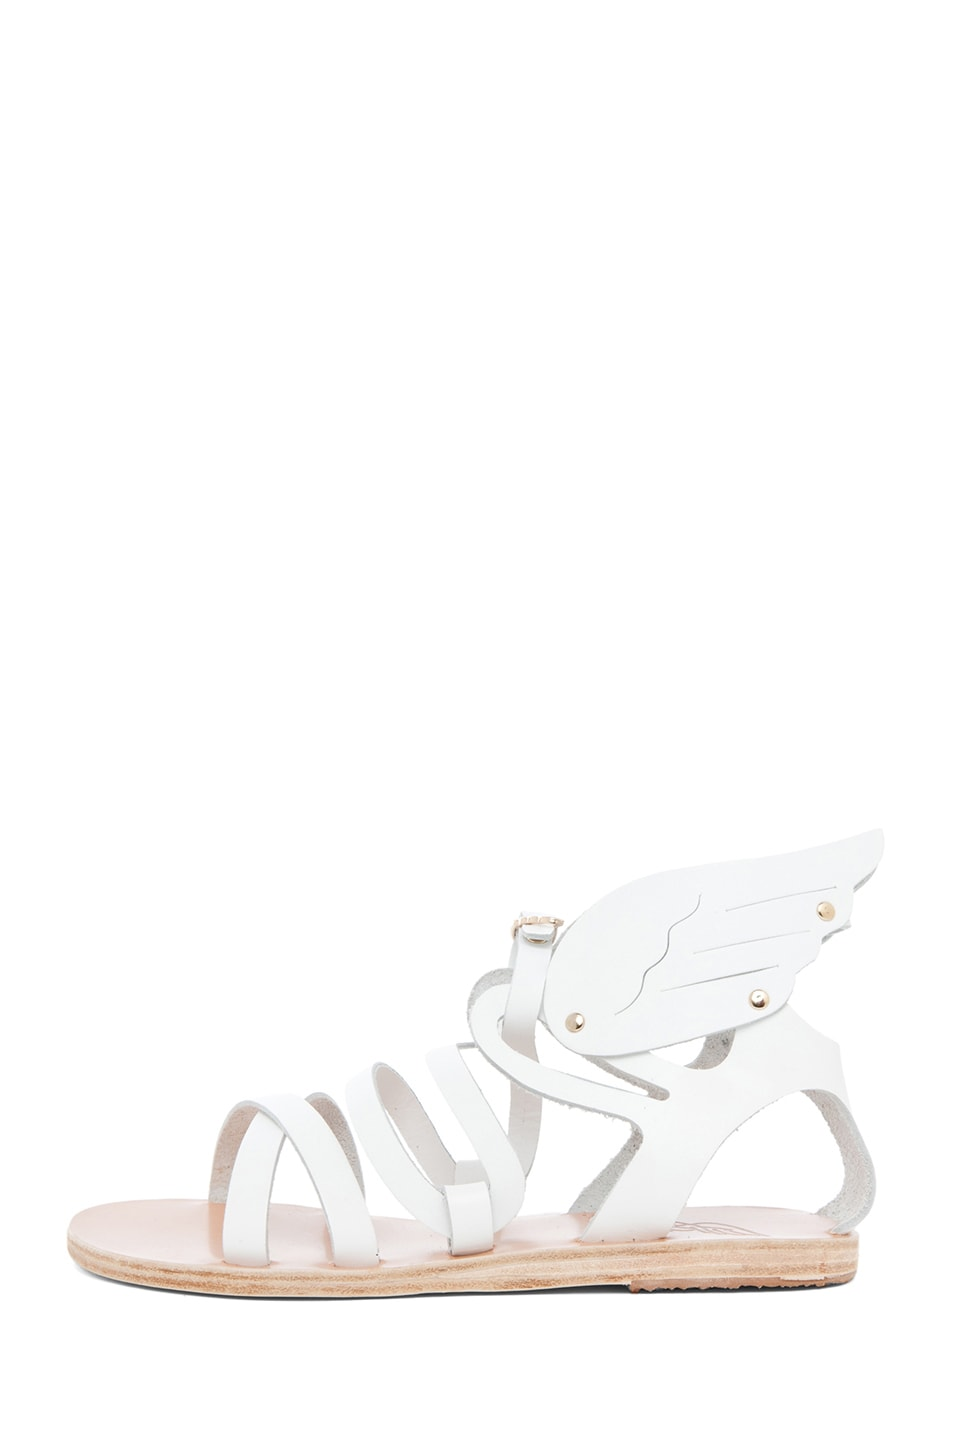 Image 1 of Ancient Greek Sandals Nephele Calfskin Leather Sandals in White